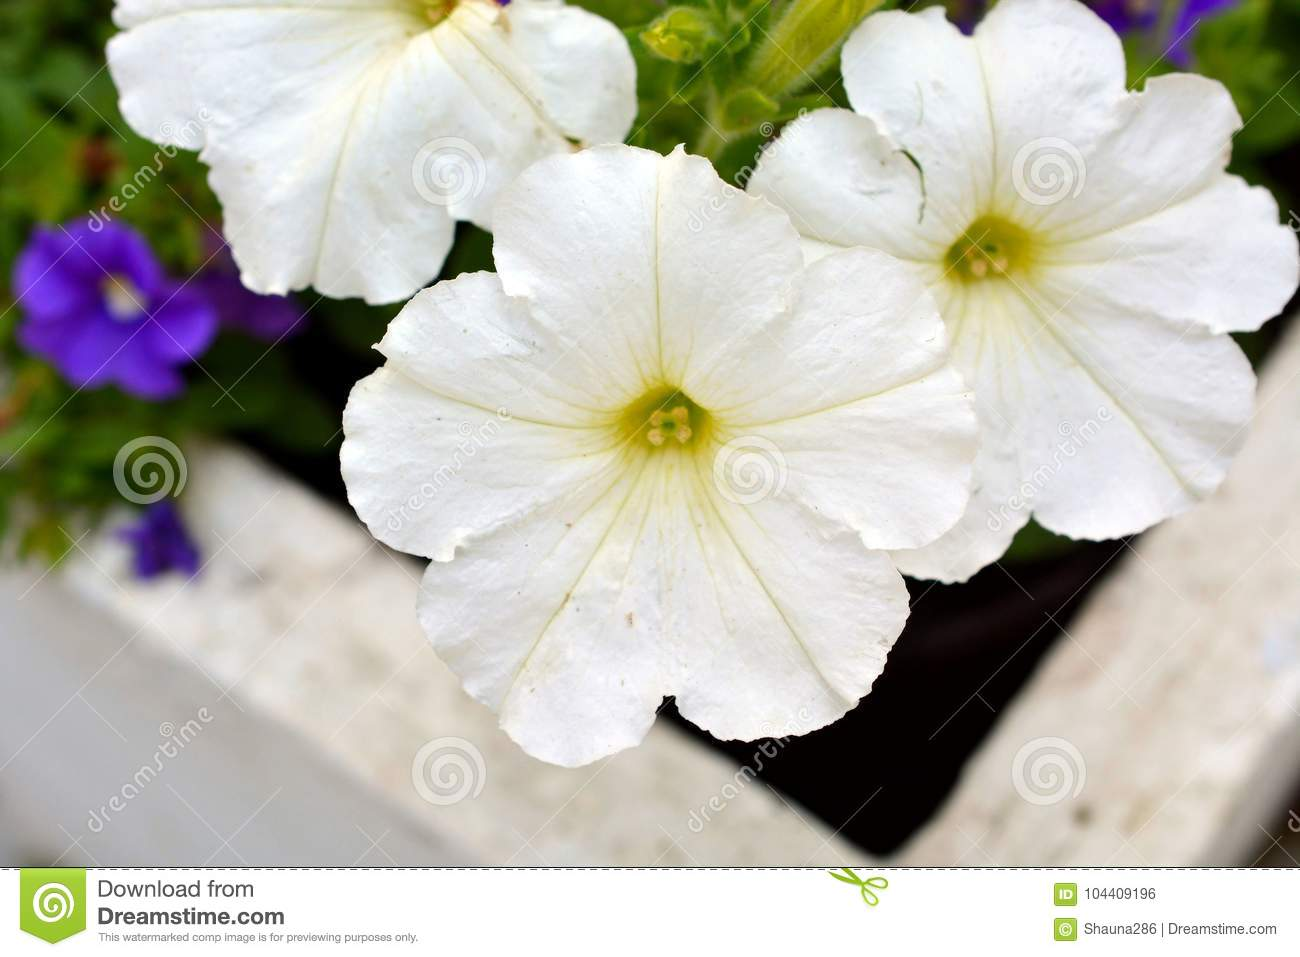 White Petunia Flowers In Bloom Stock Photo Image Of Nature